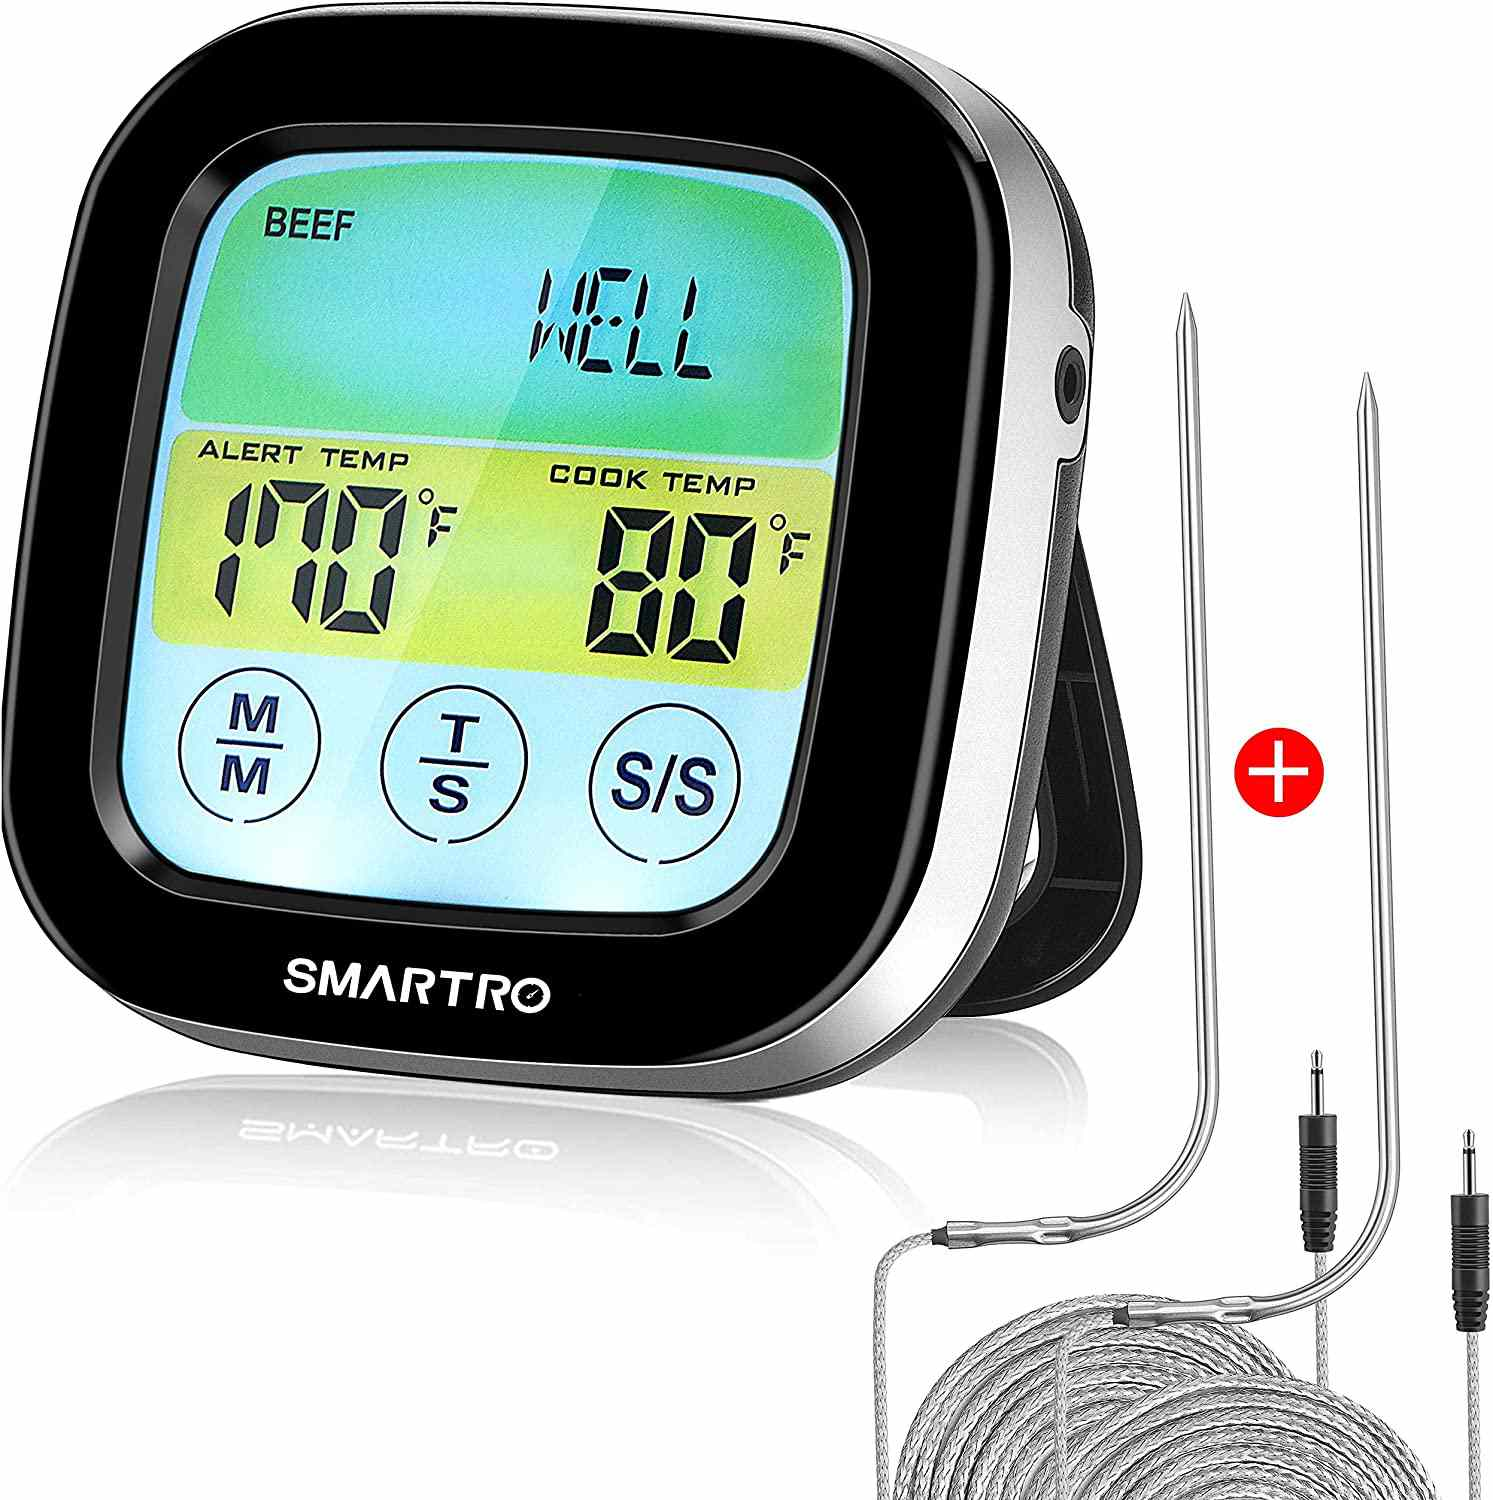 SMARTRO ST59 Digital Meat Thermometer